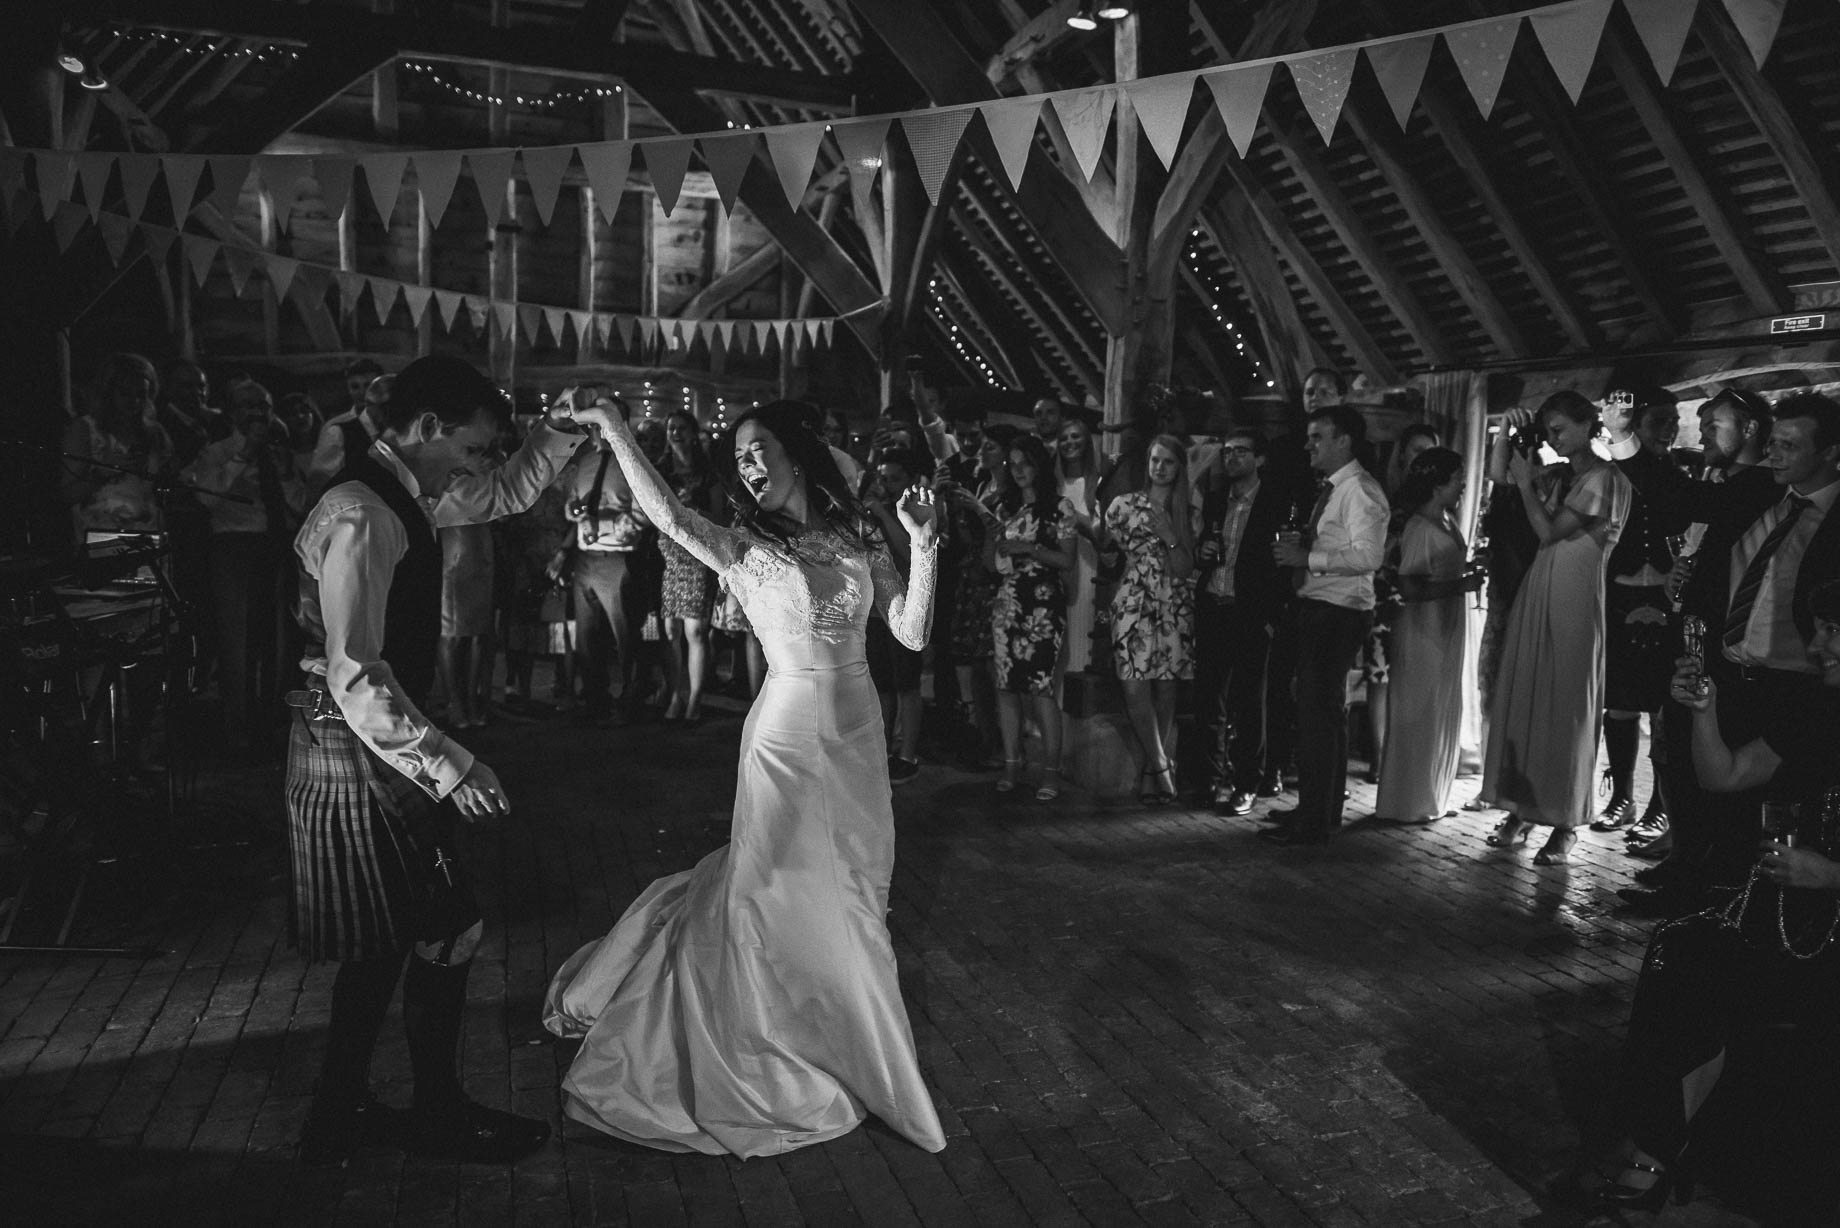 Gildings Barn wedding photography - Sarah and Steve (179 of 190)